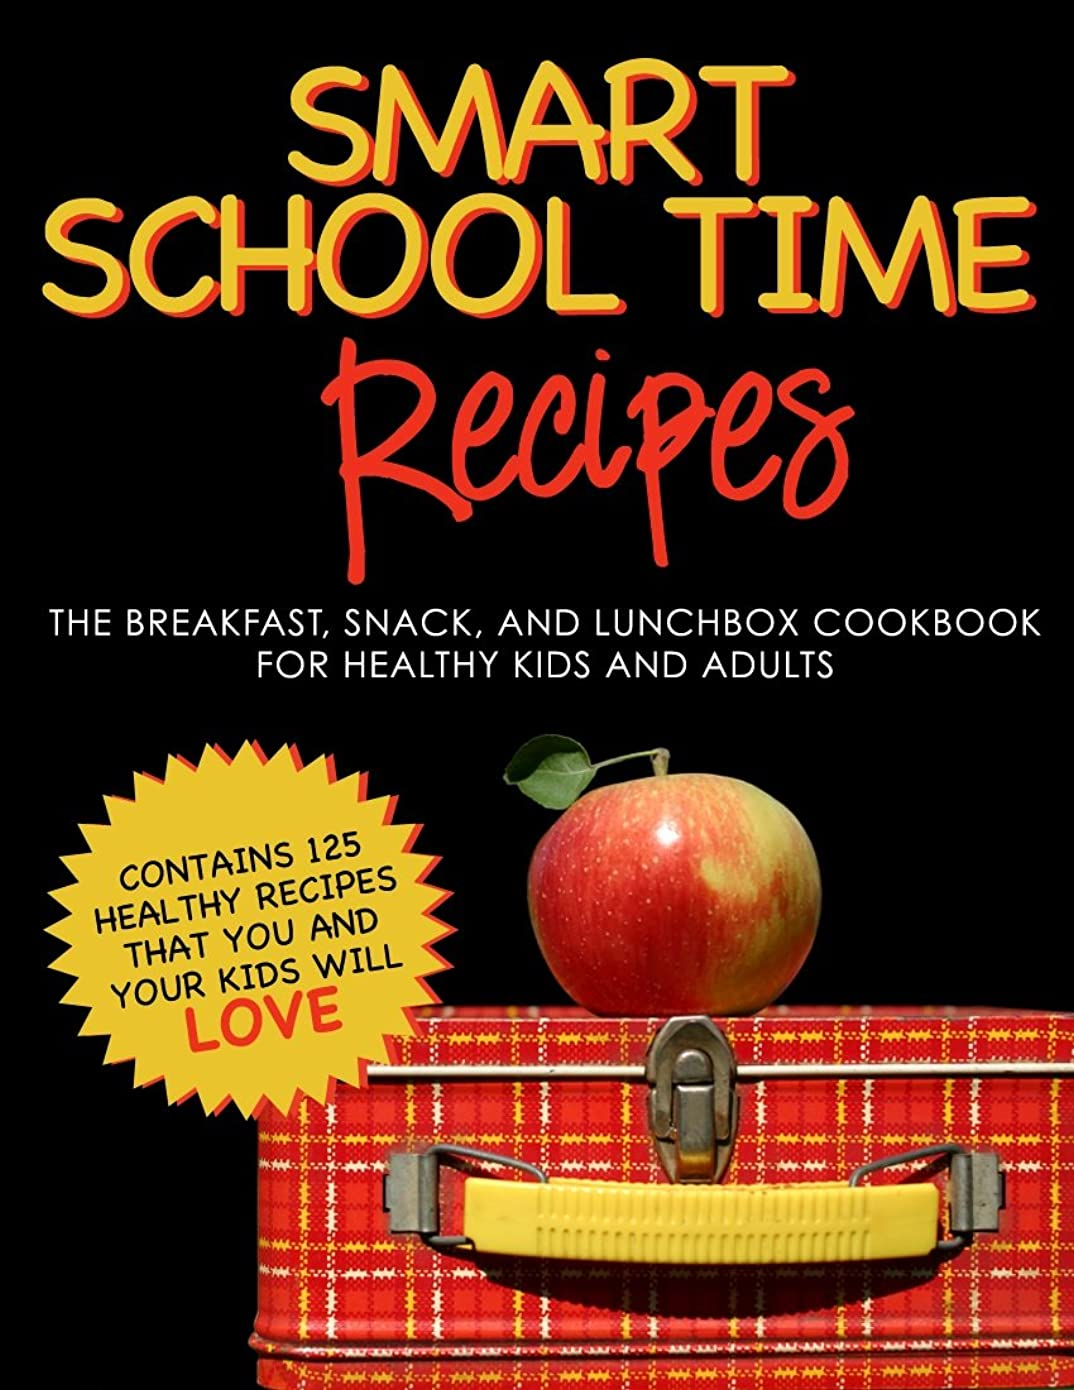 SMART SCHOOL TIME RECIPES: The Breakfast, Snack, and Lunchbox Cookbook for Healthy Kids and Adults (English Edition)